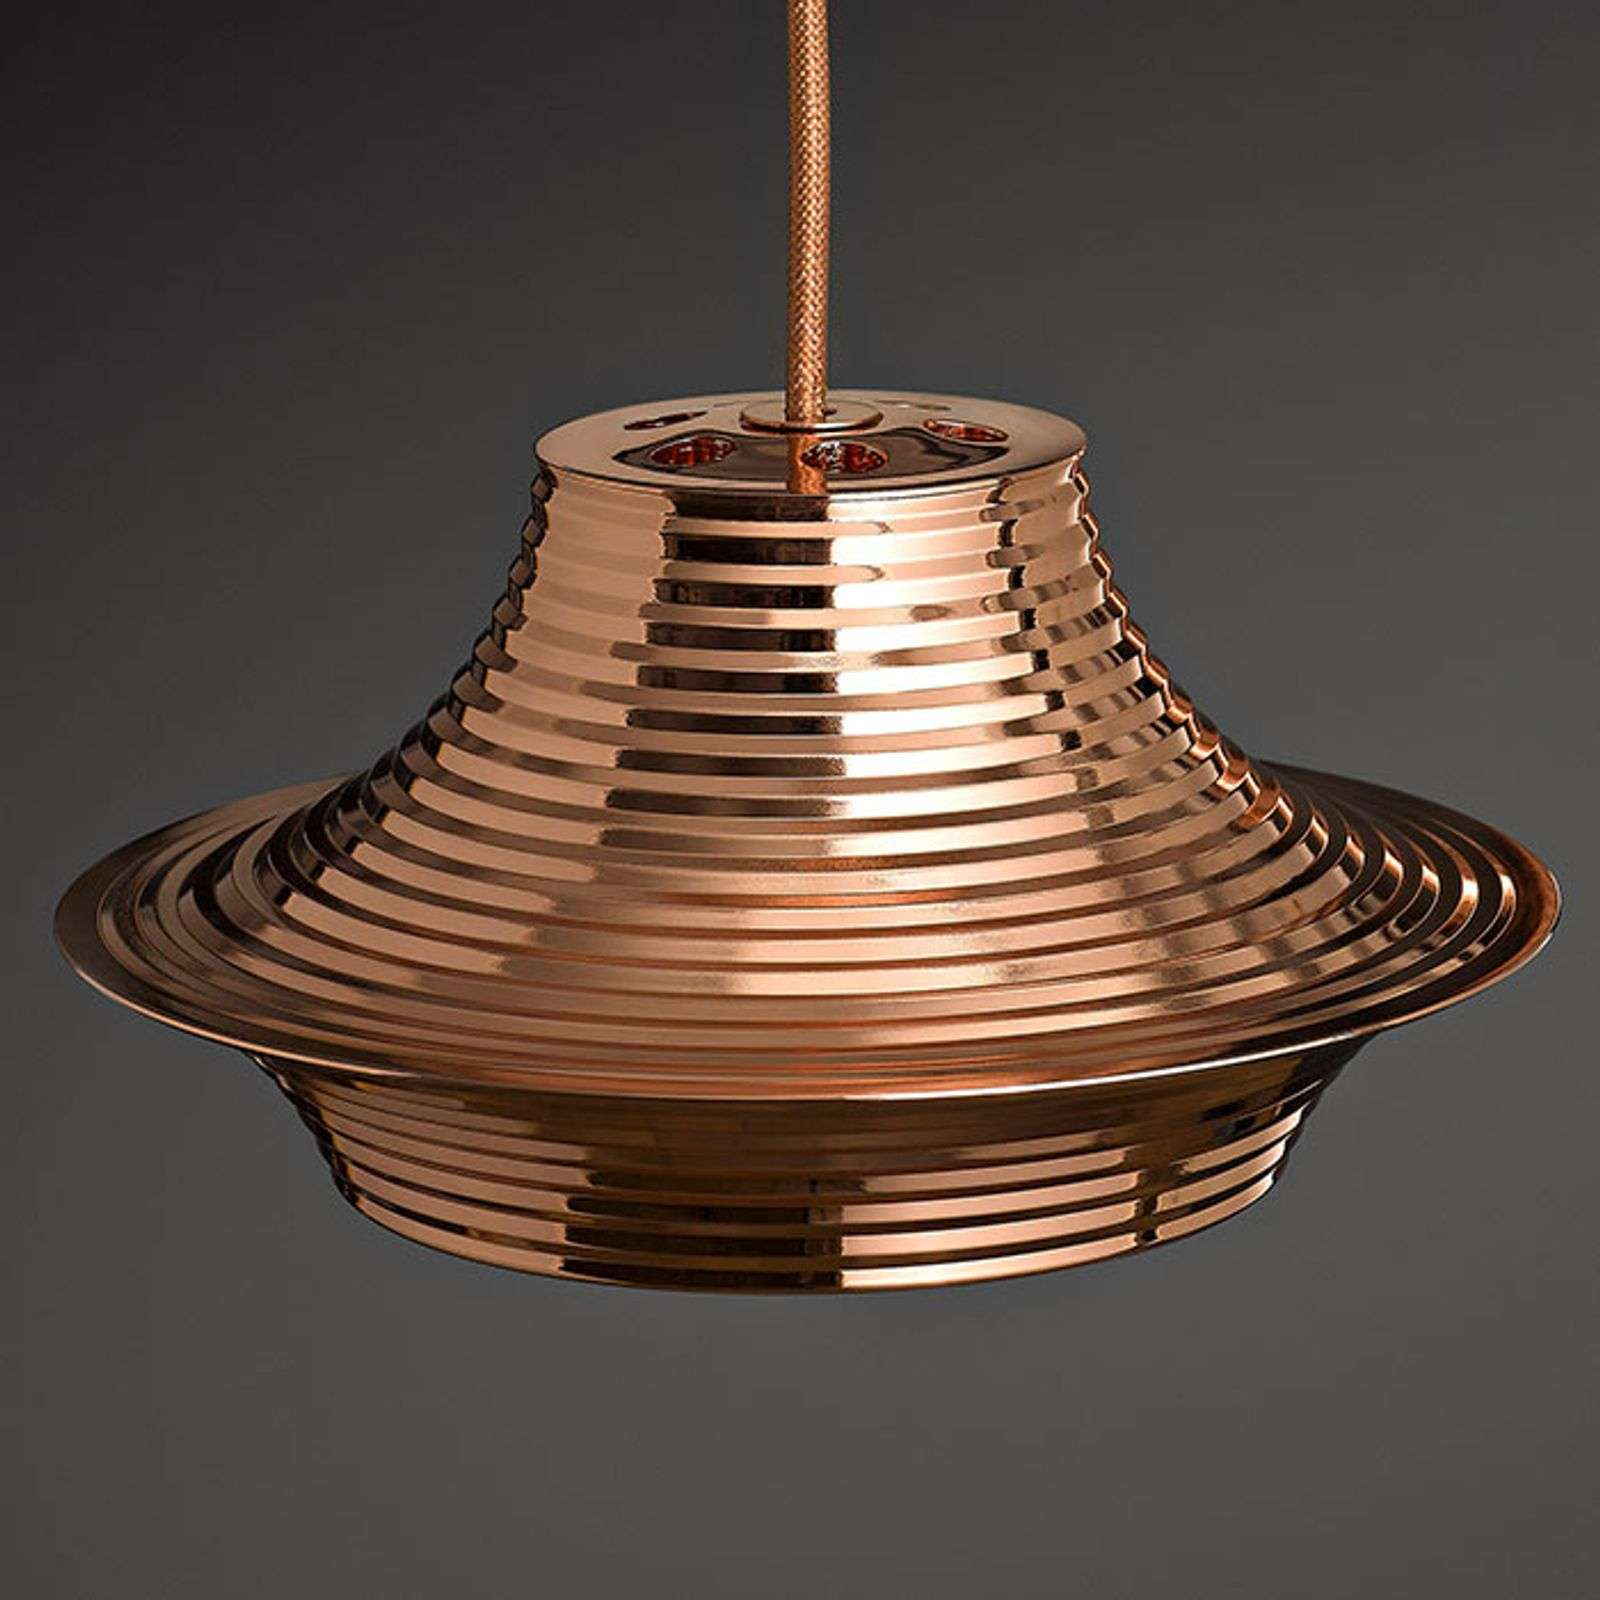 Bover Tibeta 03 - suspension LED, cuivrée